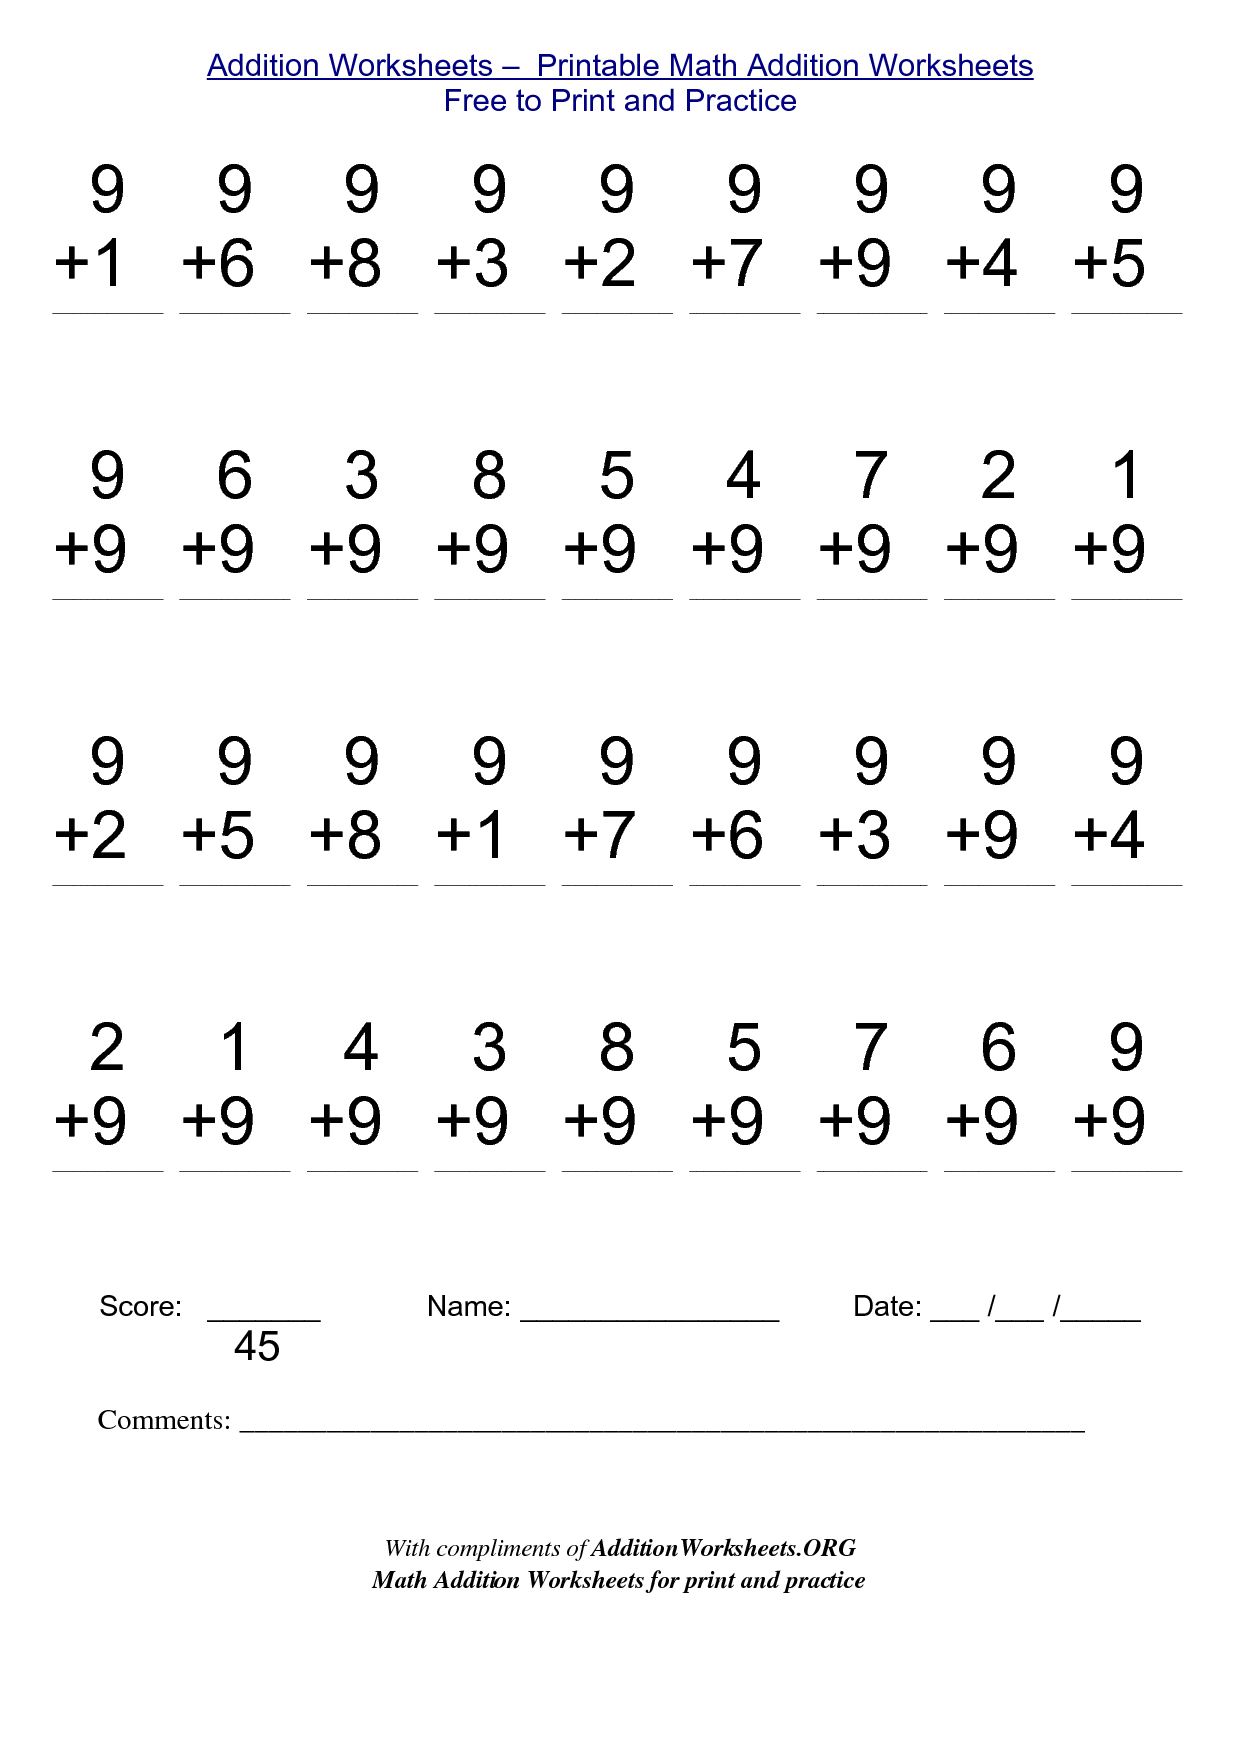 Math Worksheets For Free To Print - Alot | Me | Kindergarten | Free Printable Math Worksheets For Adults